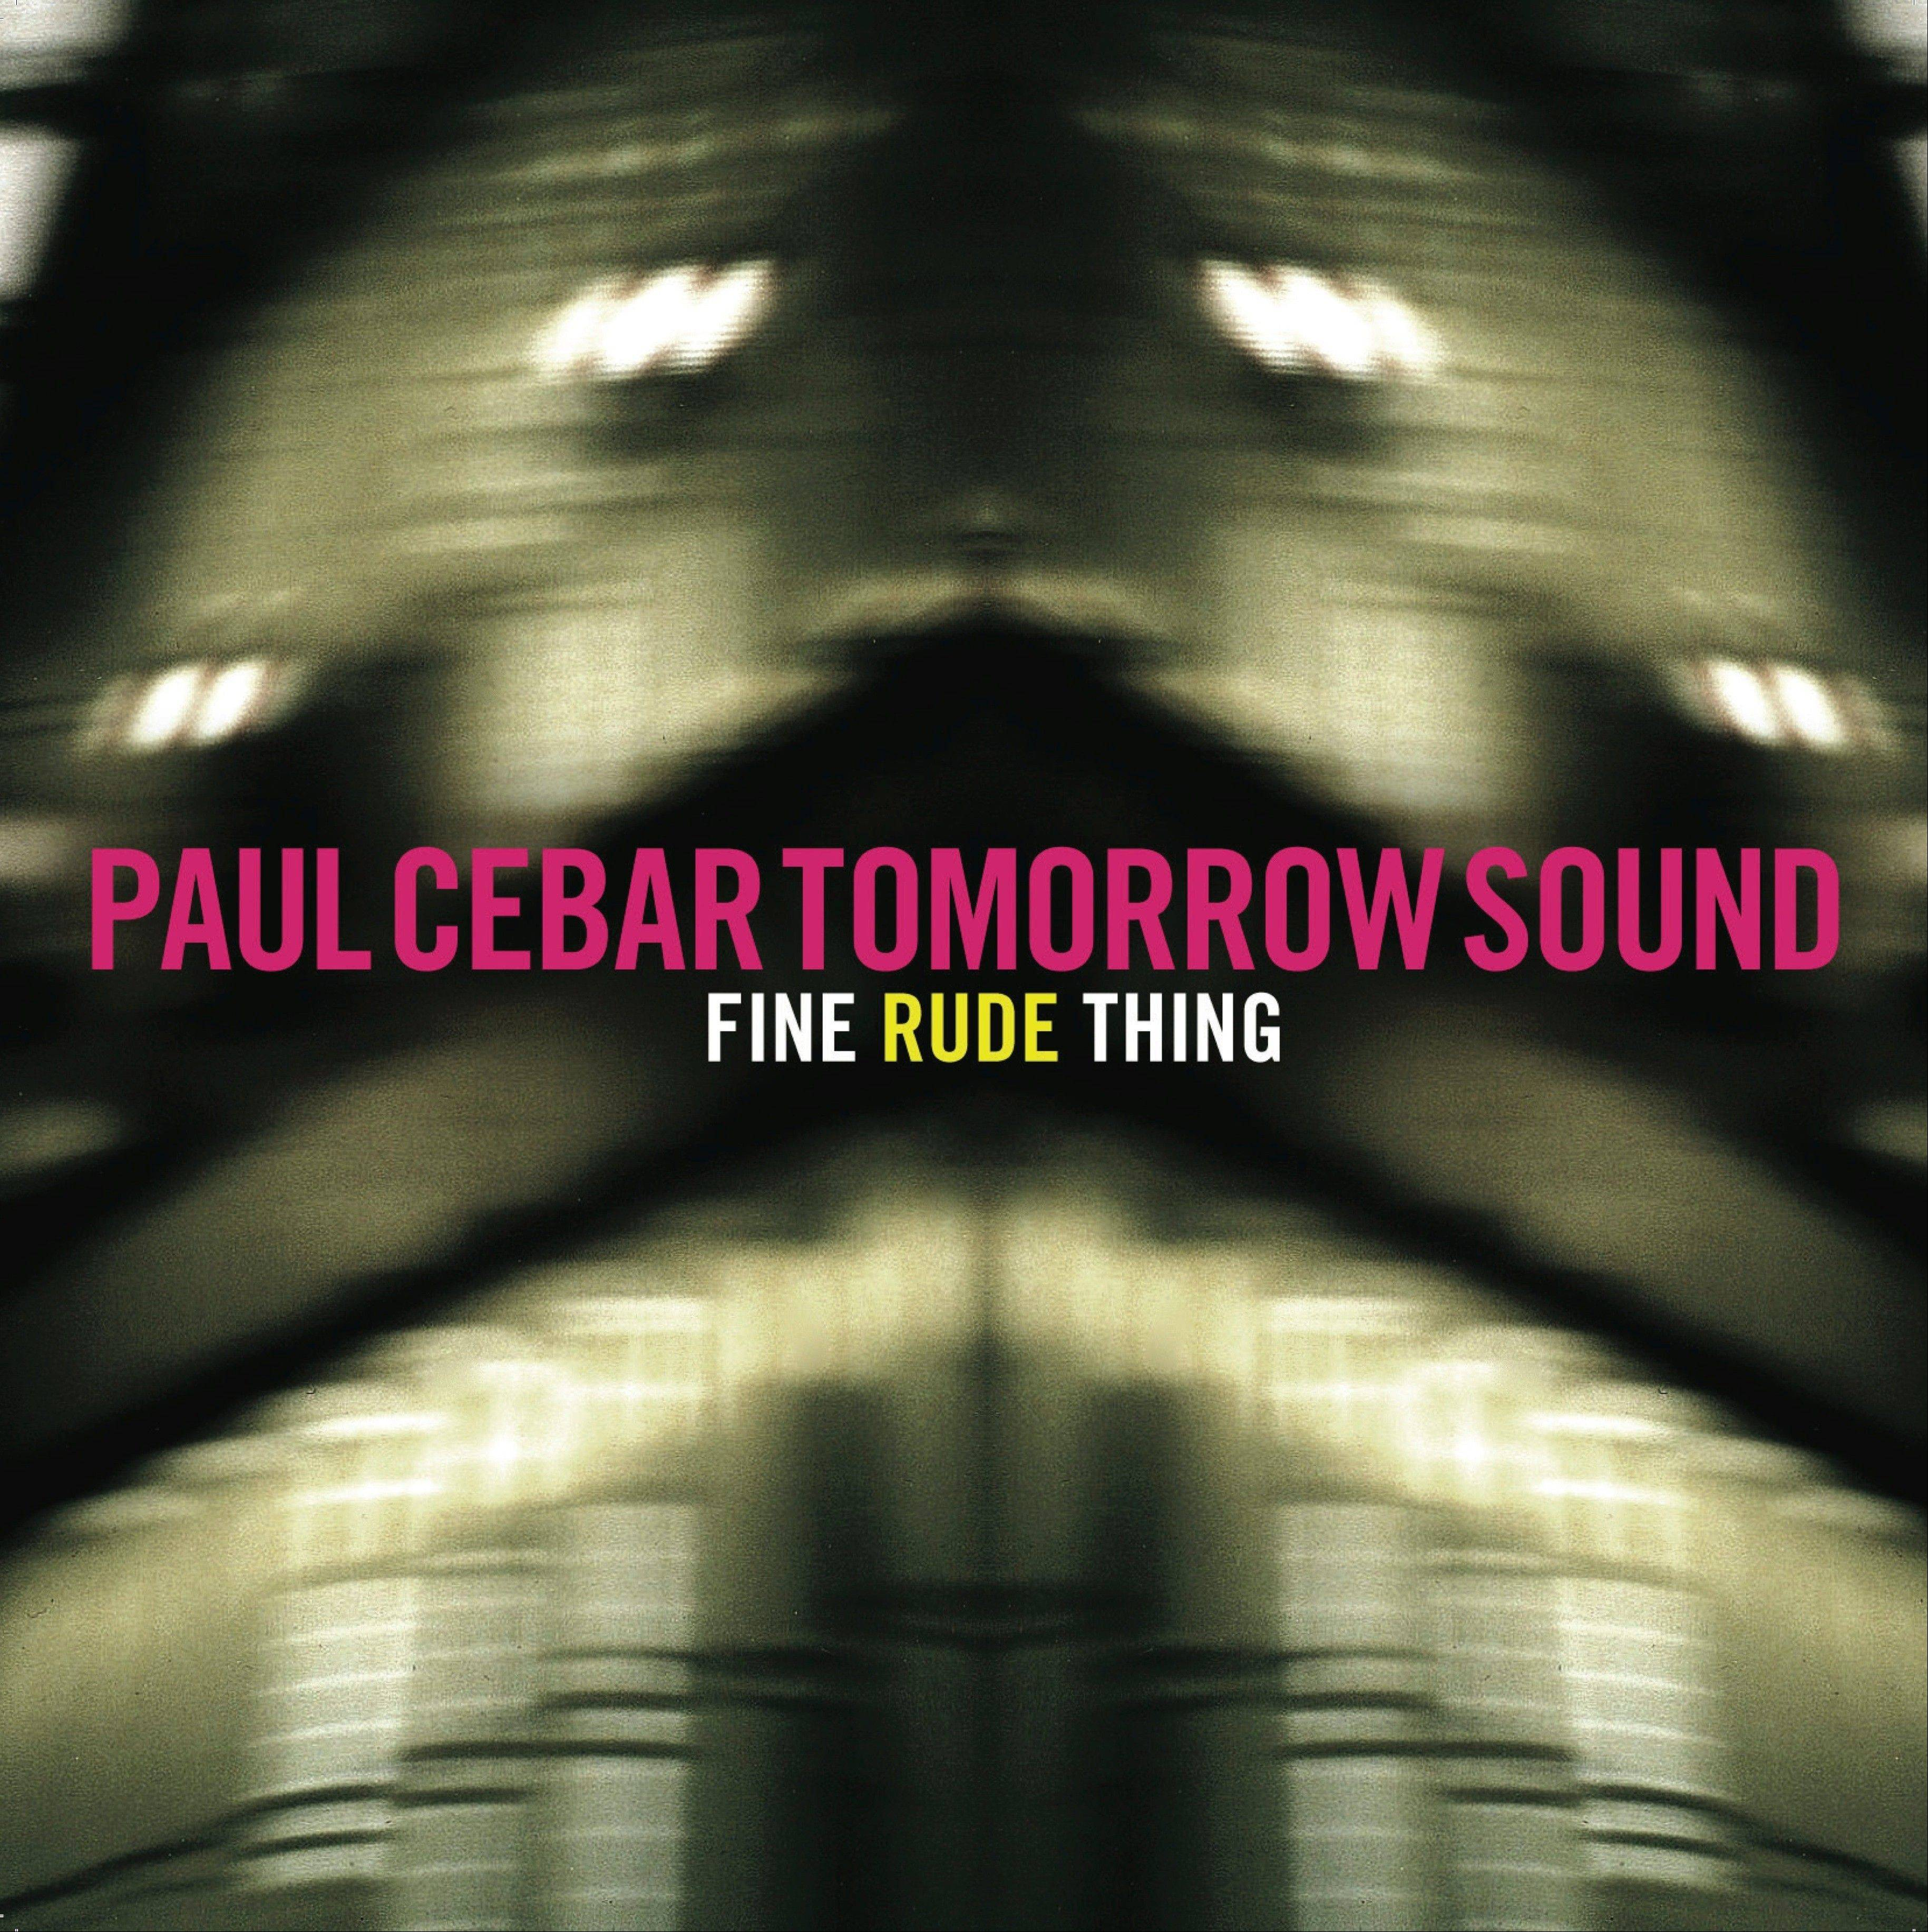 """Fine Rude Thing"" by Paul Cebar Tomorrow Sound"